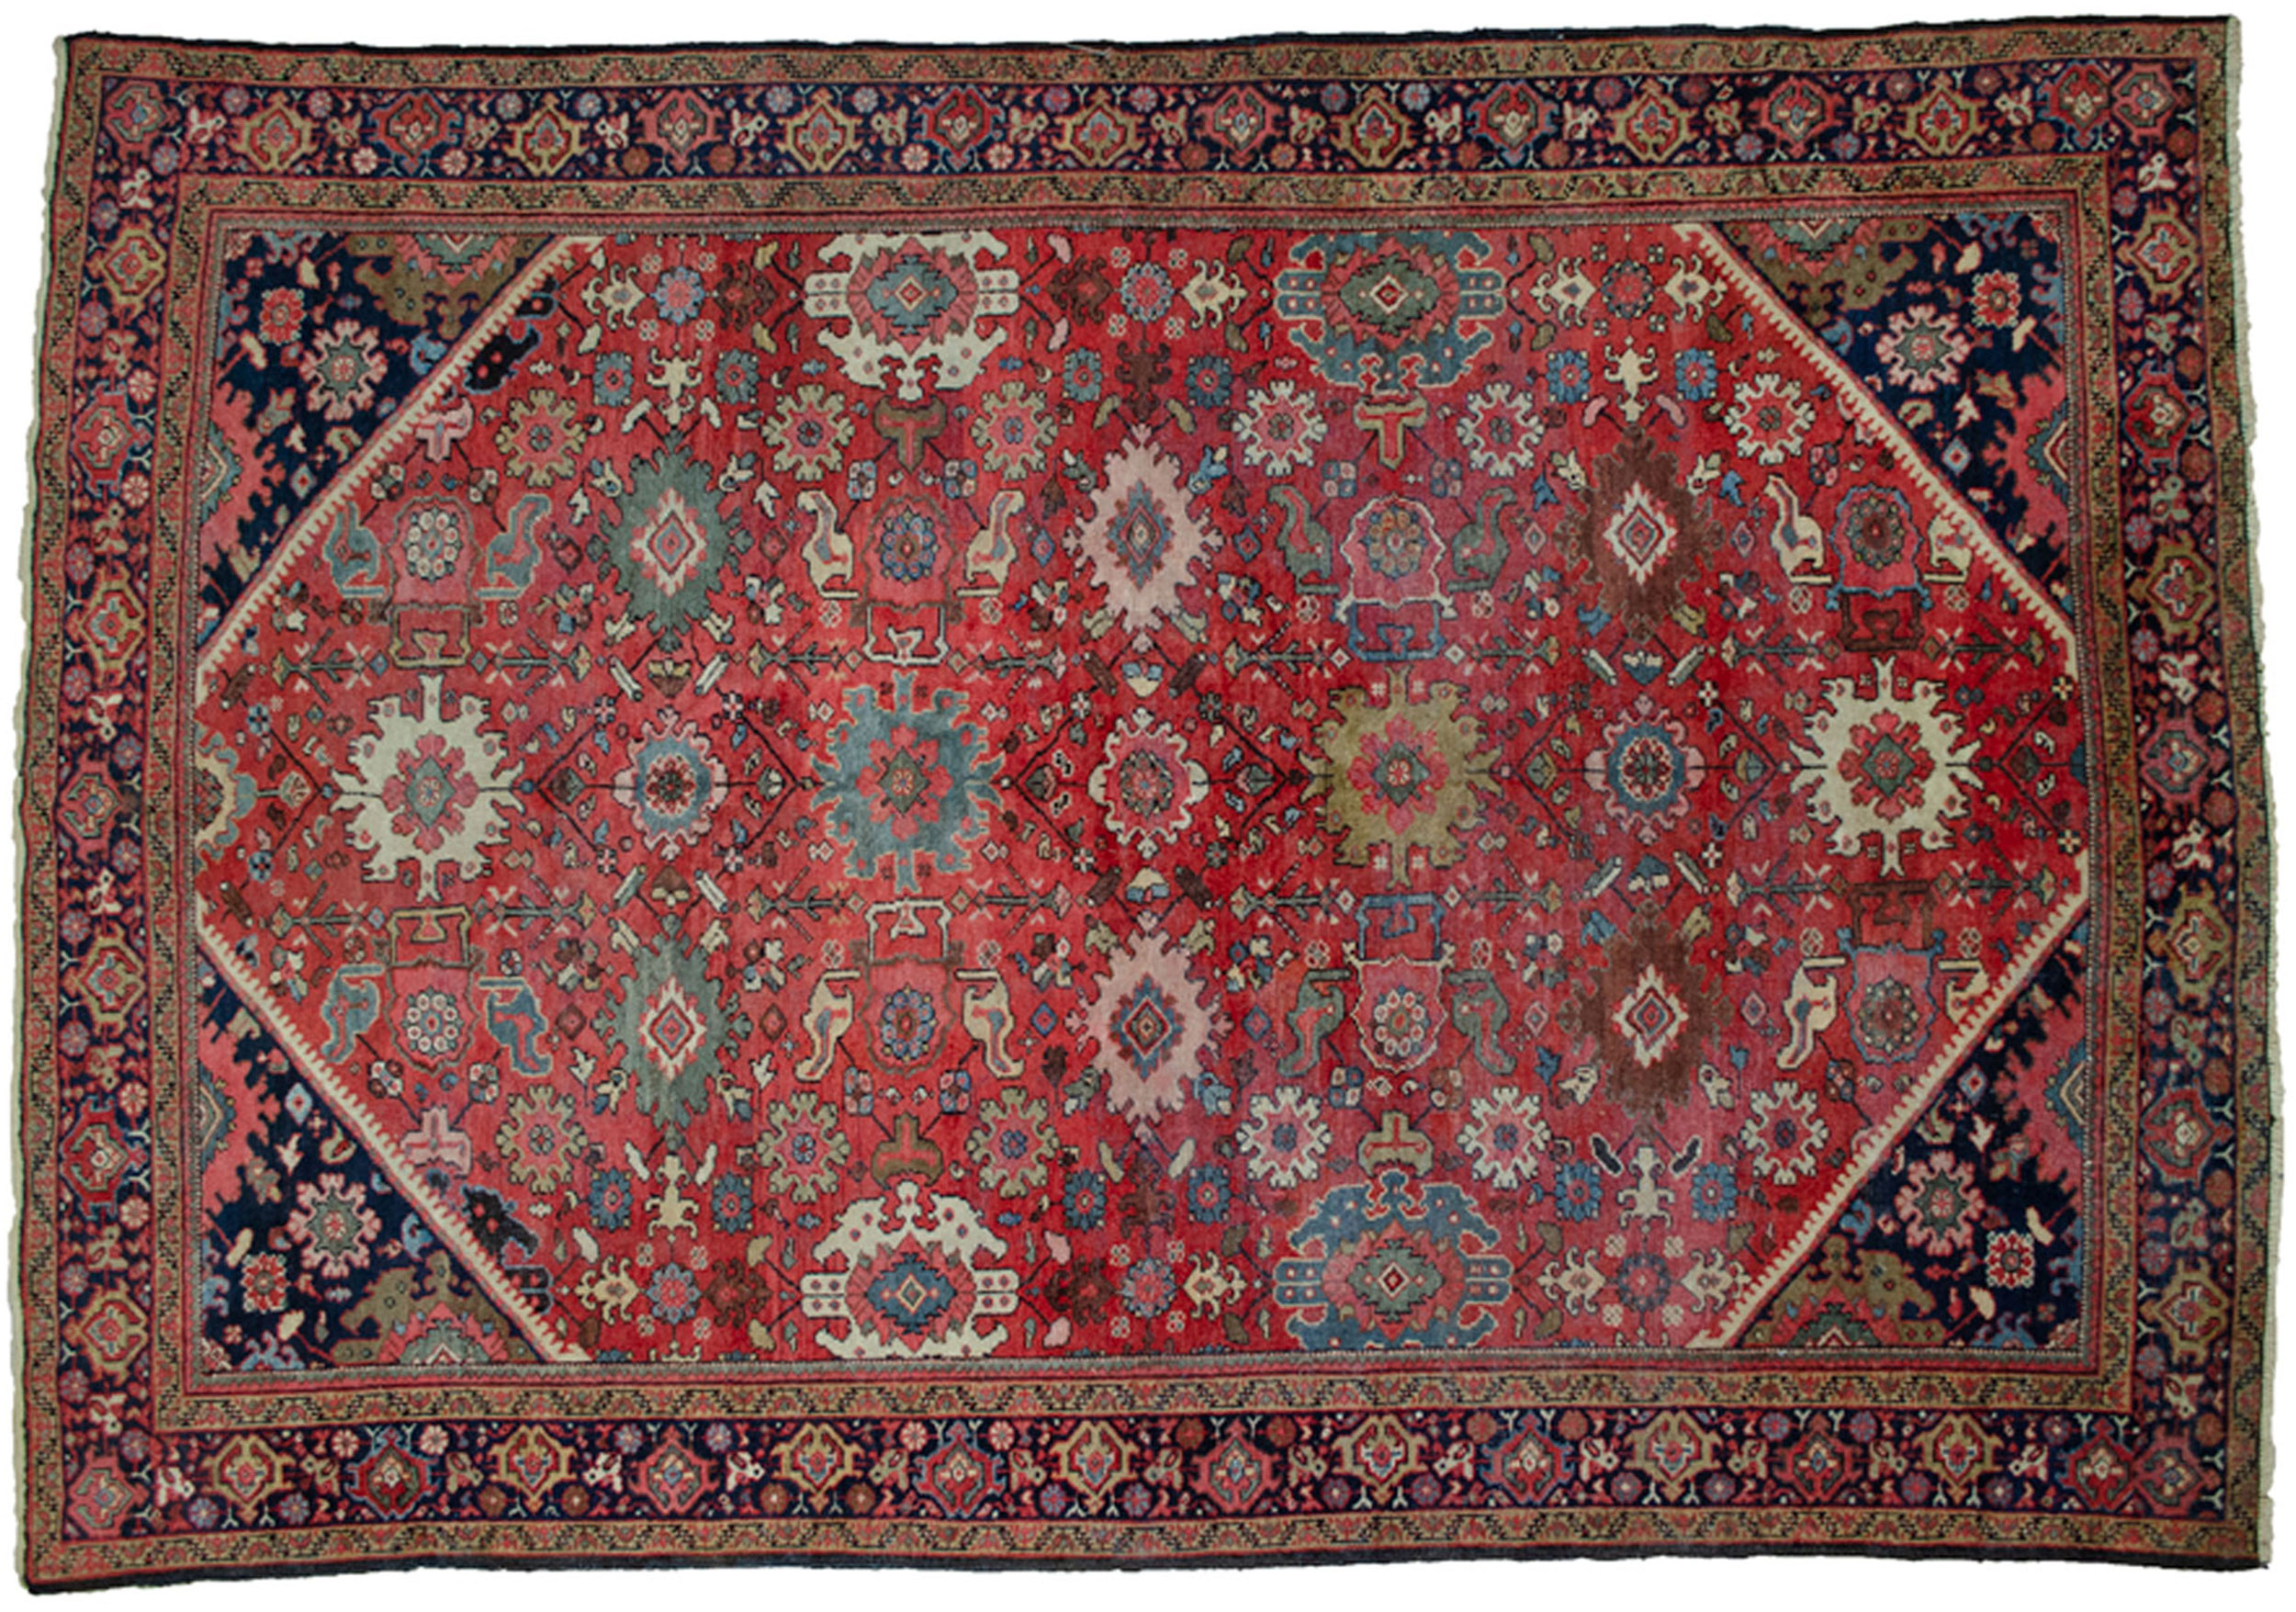 Antique Mahal Carpet 304x213cm